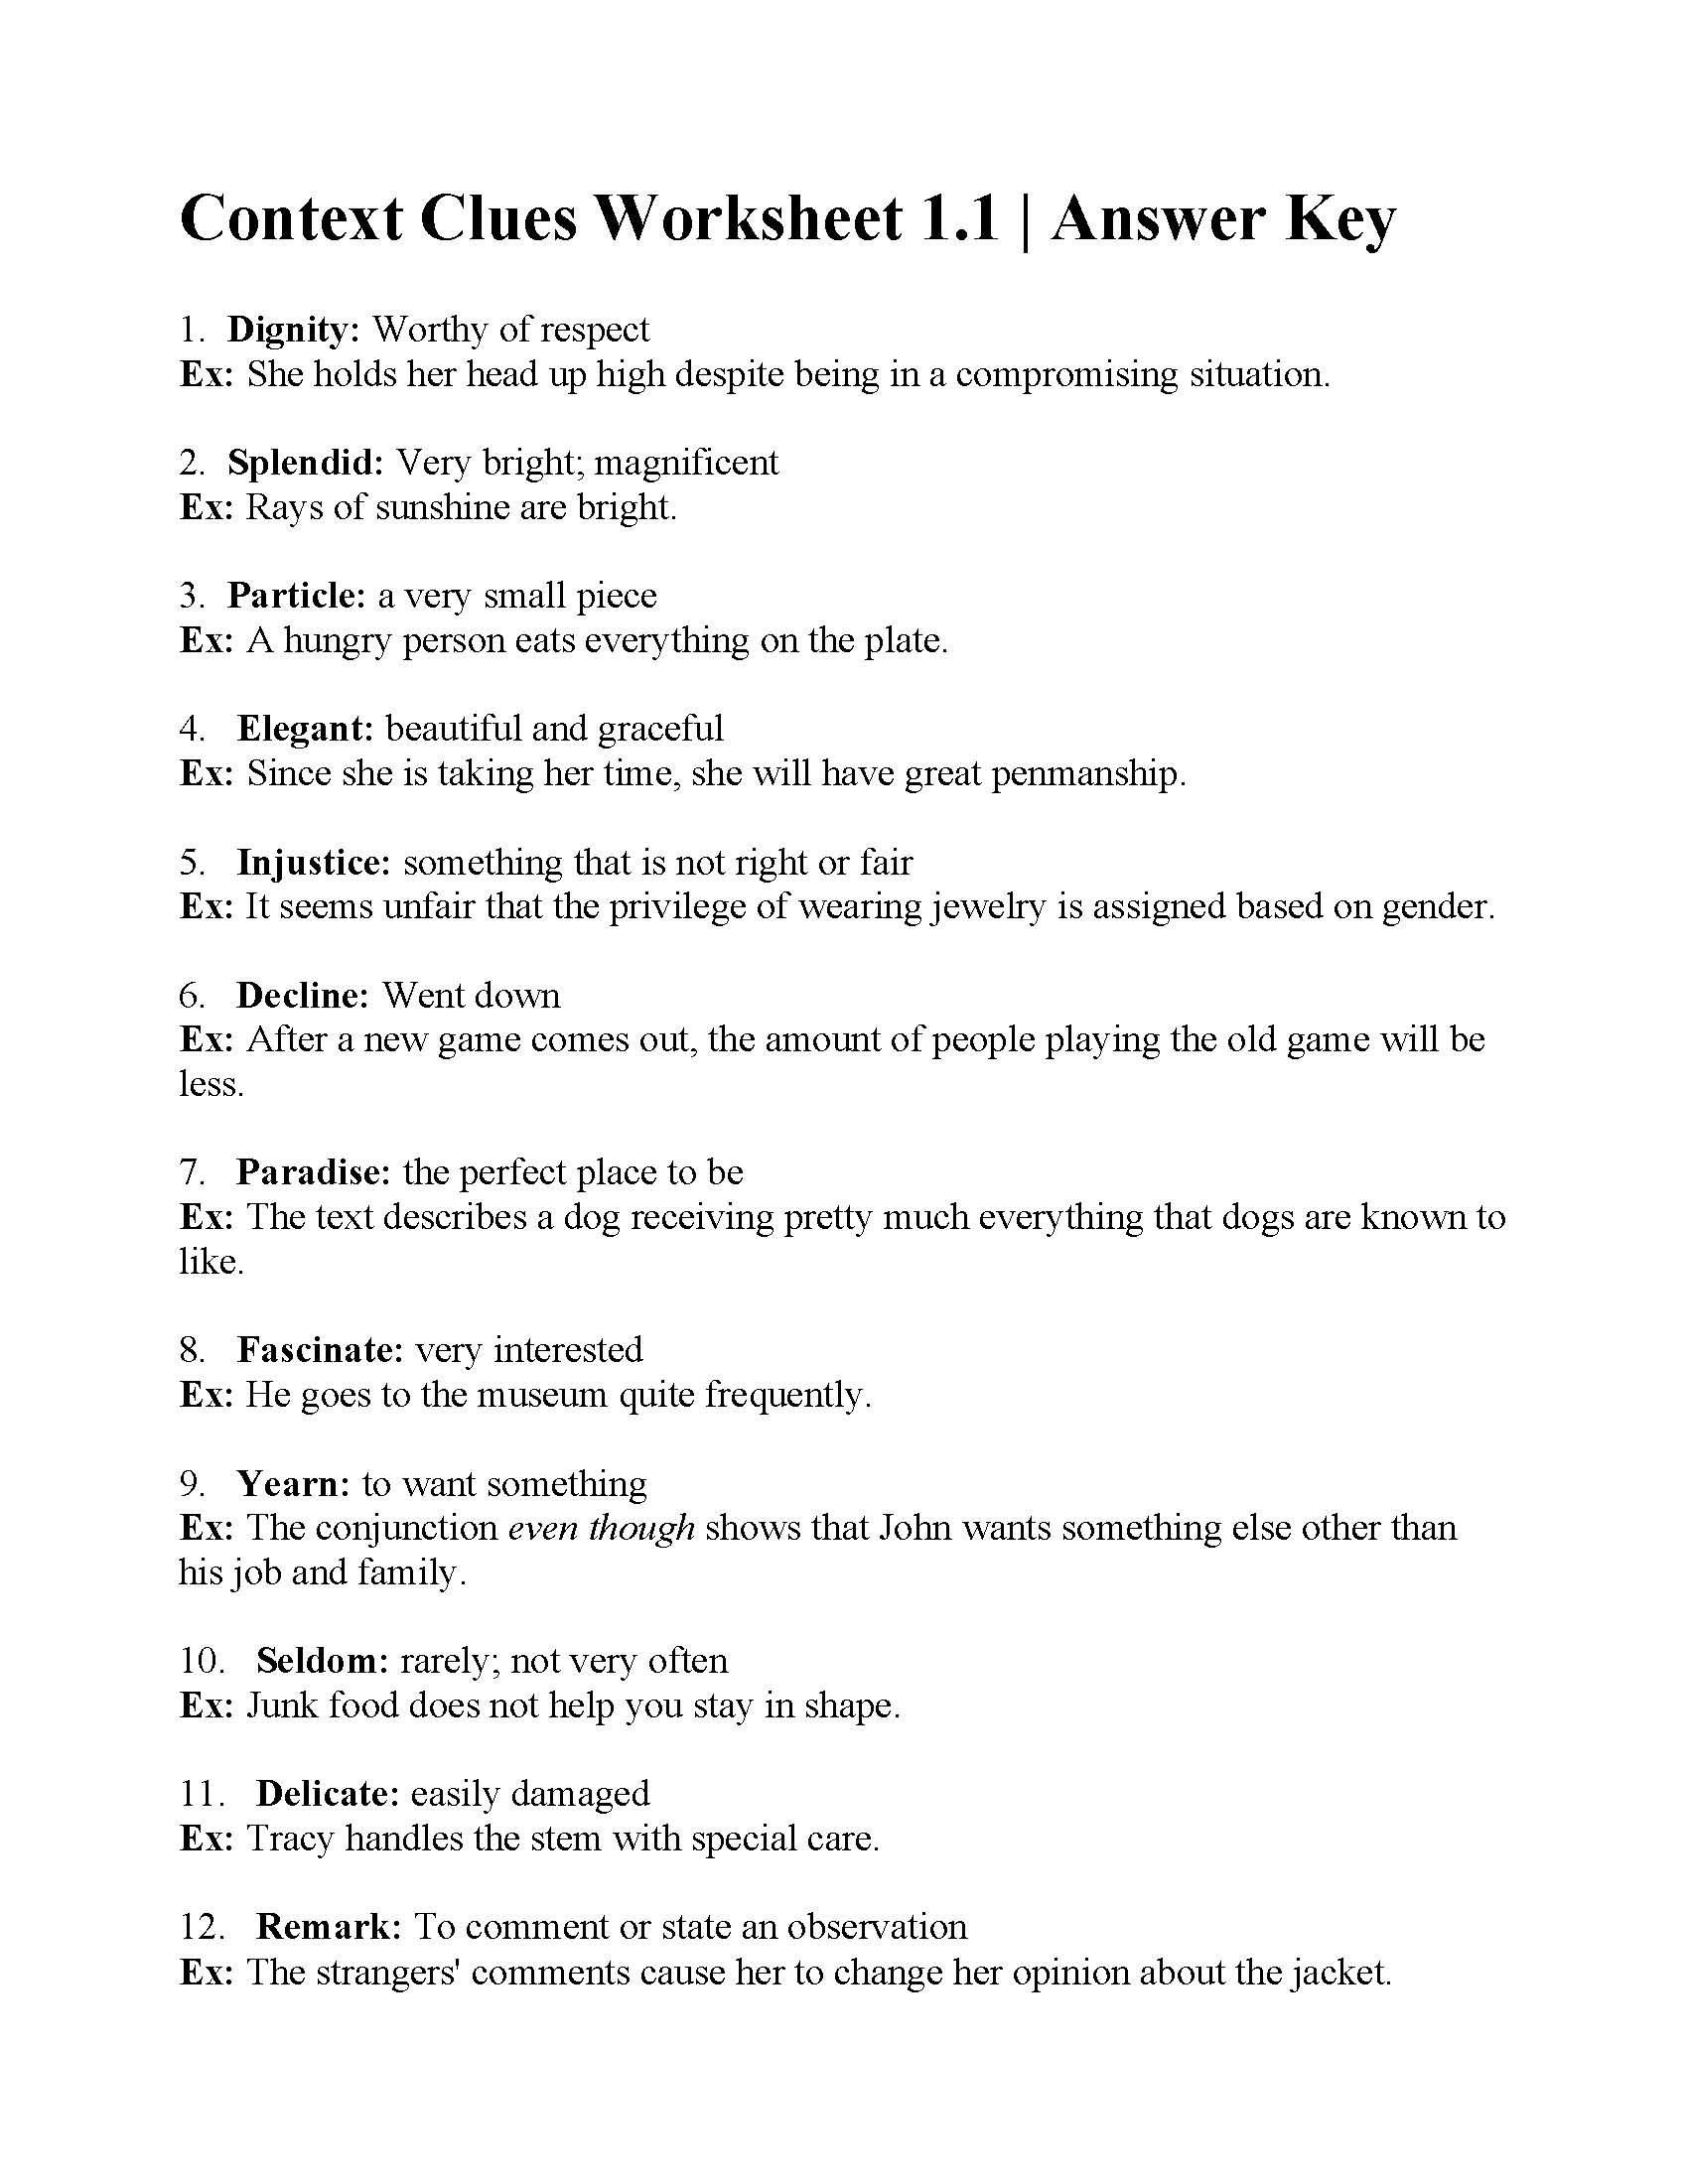 38 Interesting Context Clues Worksheets